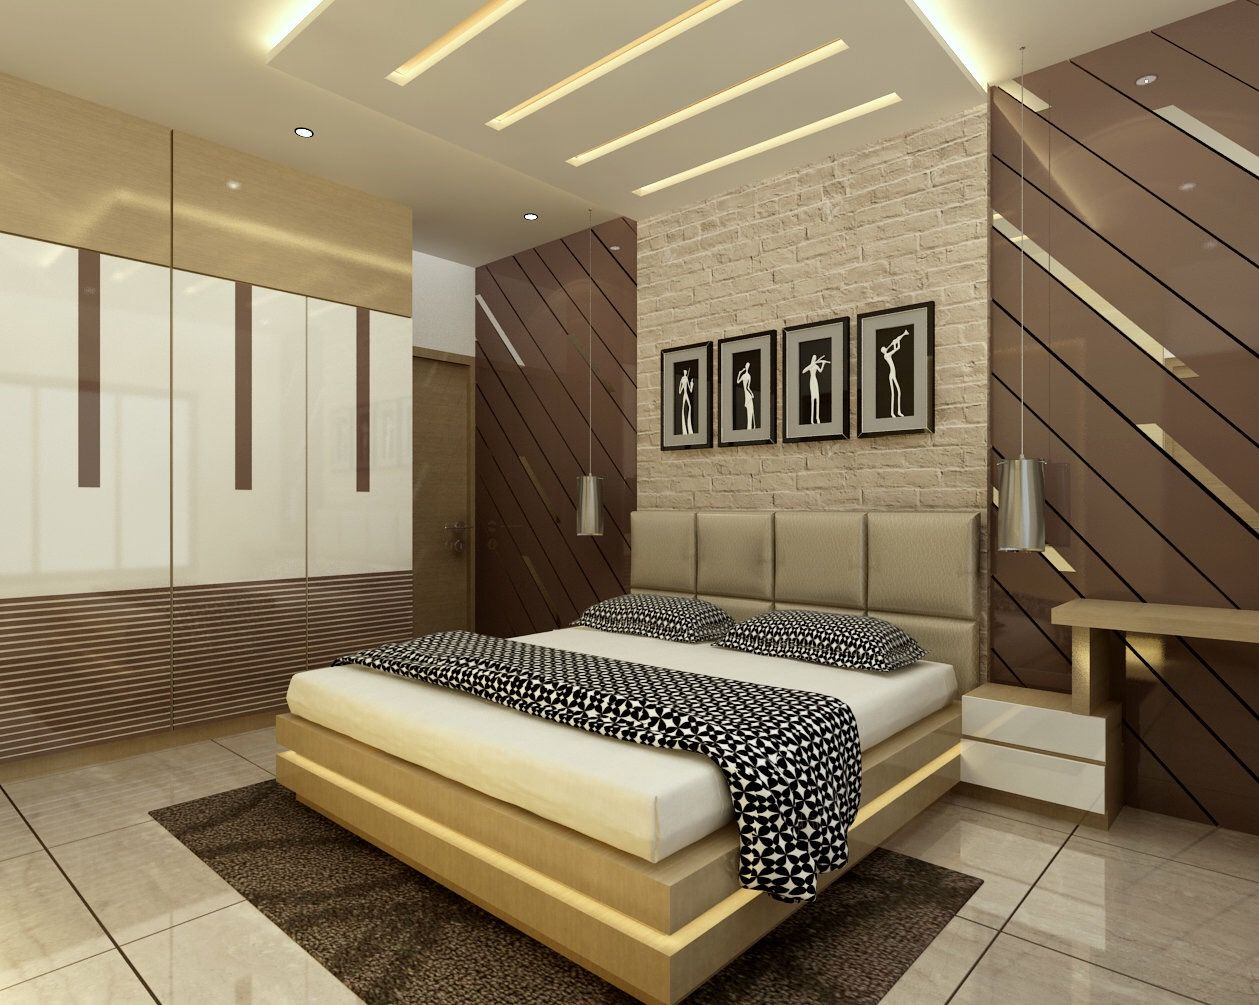 Turnkey Interior Contractor All India Level Bedroom Furniture